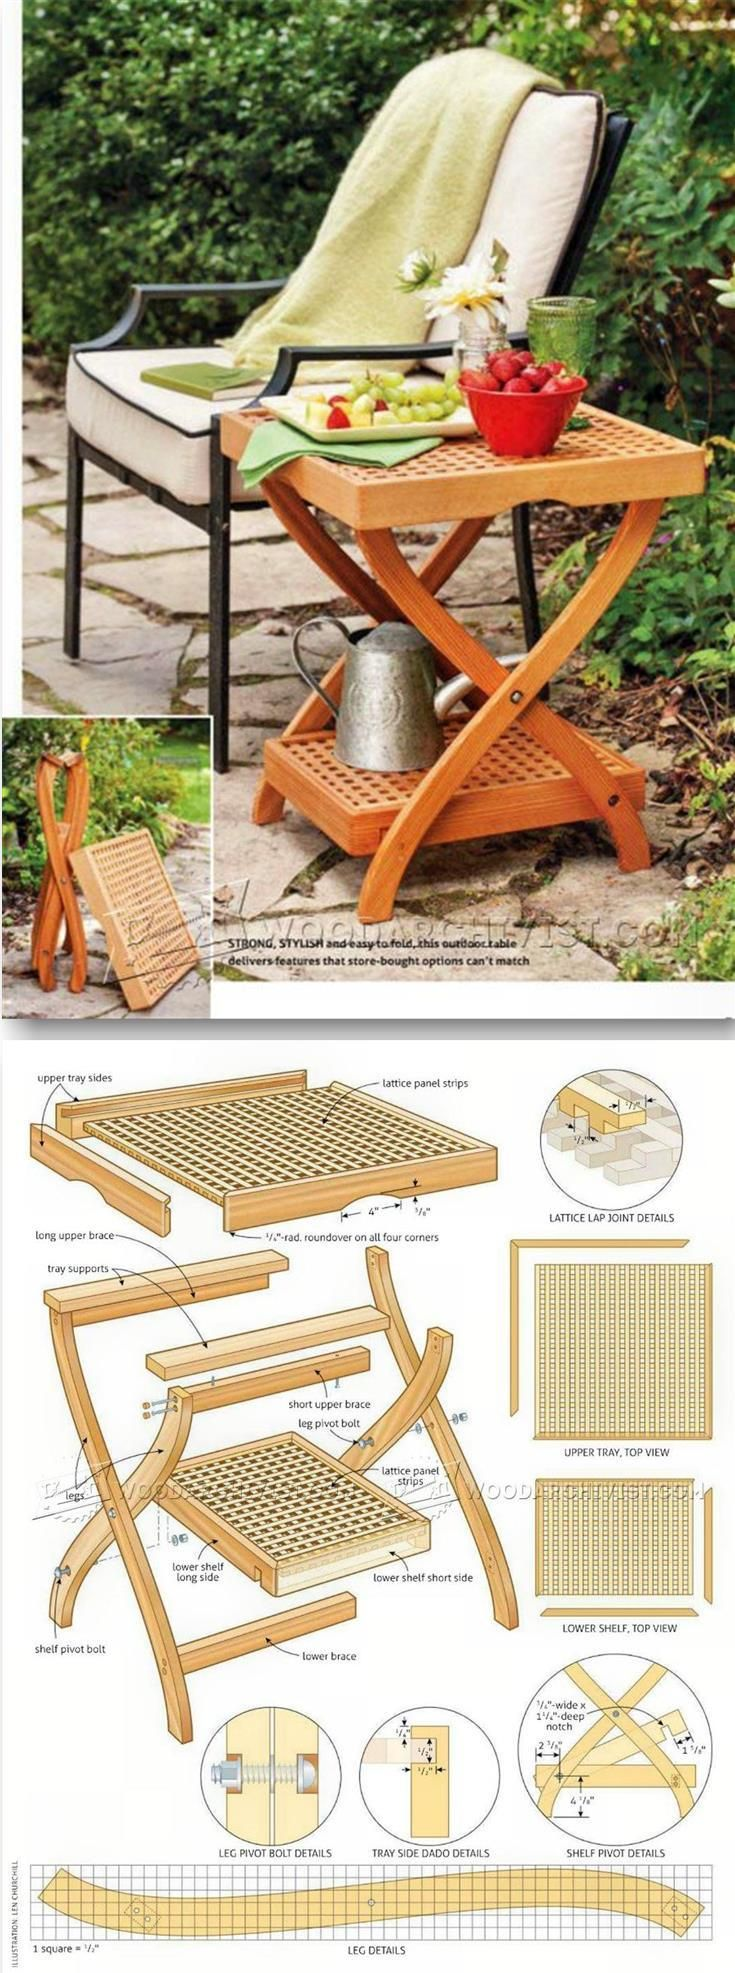 Garden Furniture Top View 169 best outdoor furniture plans images on pinterest | outdoor